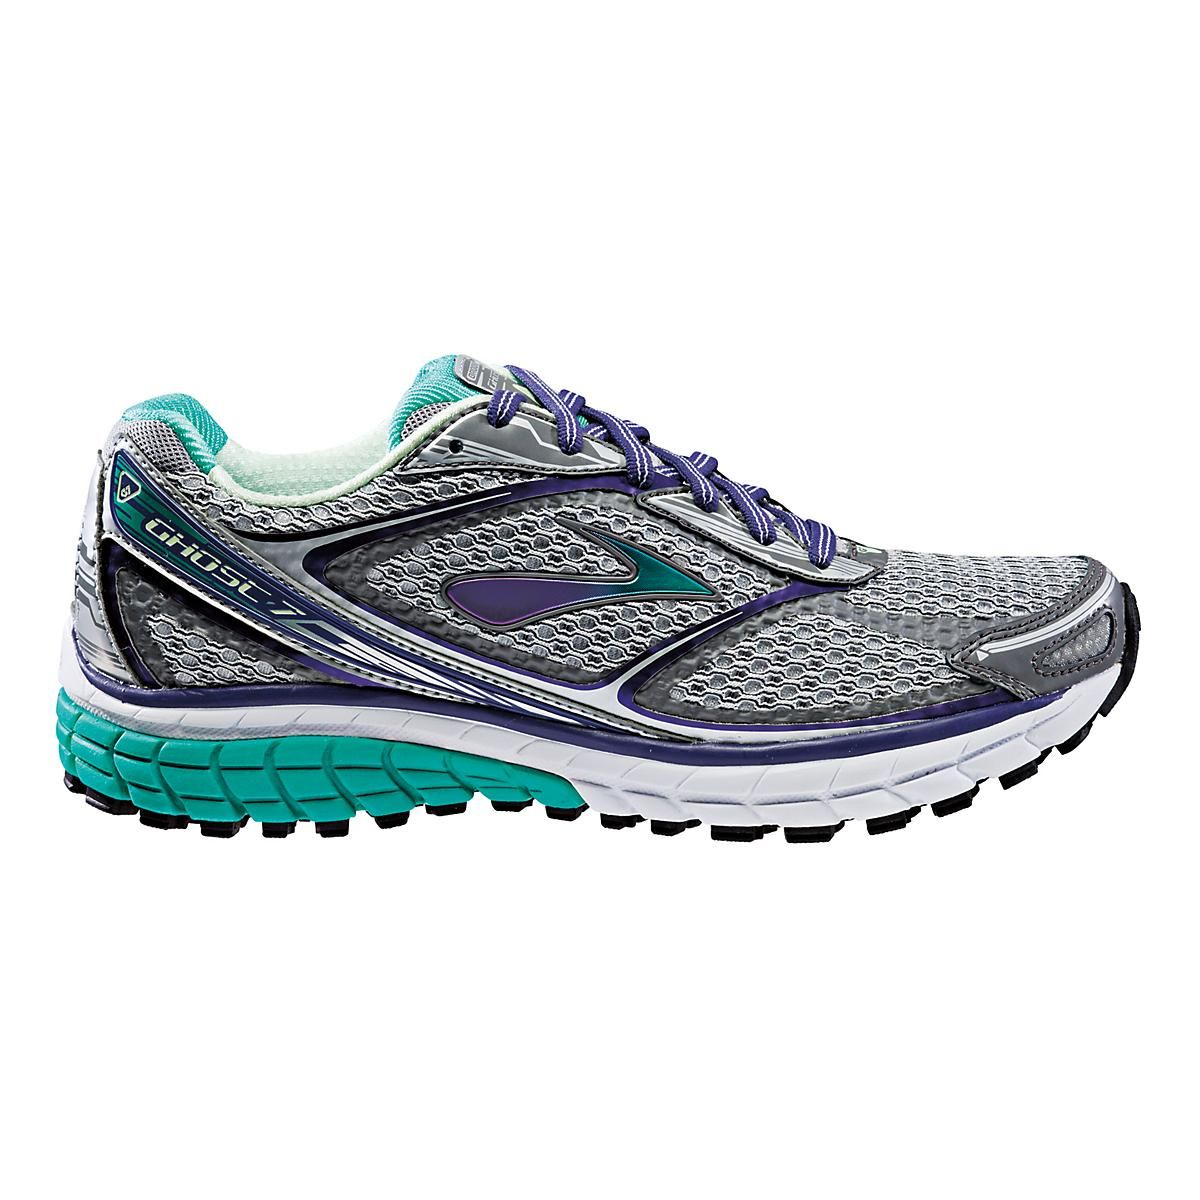 asics womens running shoes catch of the day black